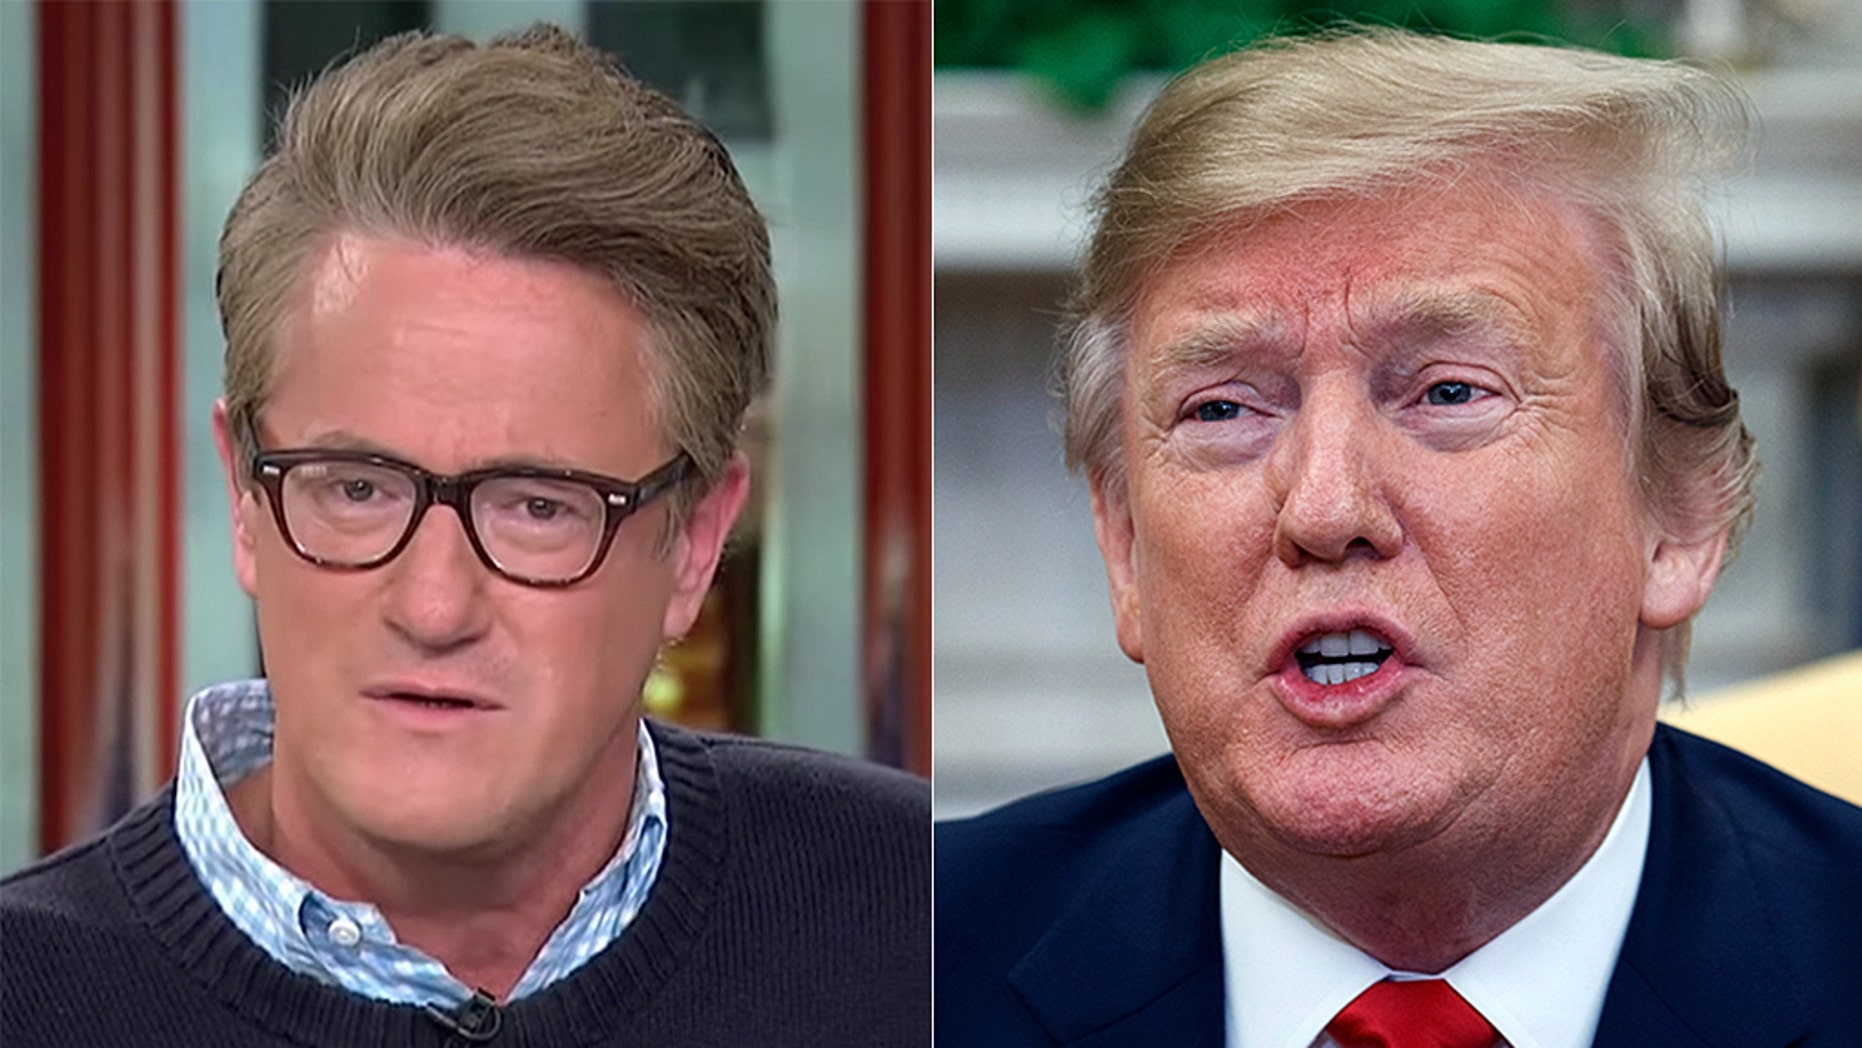 Joe Scarborough slammed Trump during 'Morning Joe,' saying the president is the antithesis of biblical teachings.